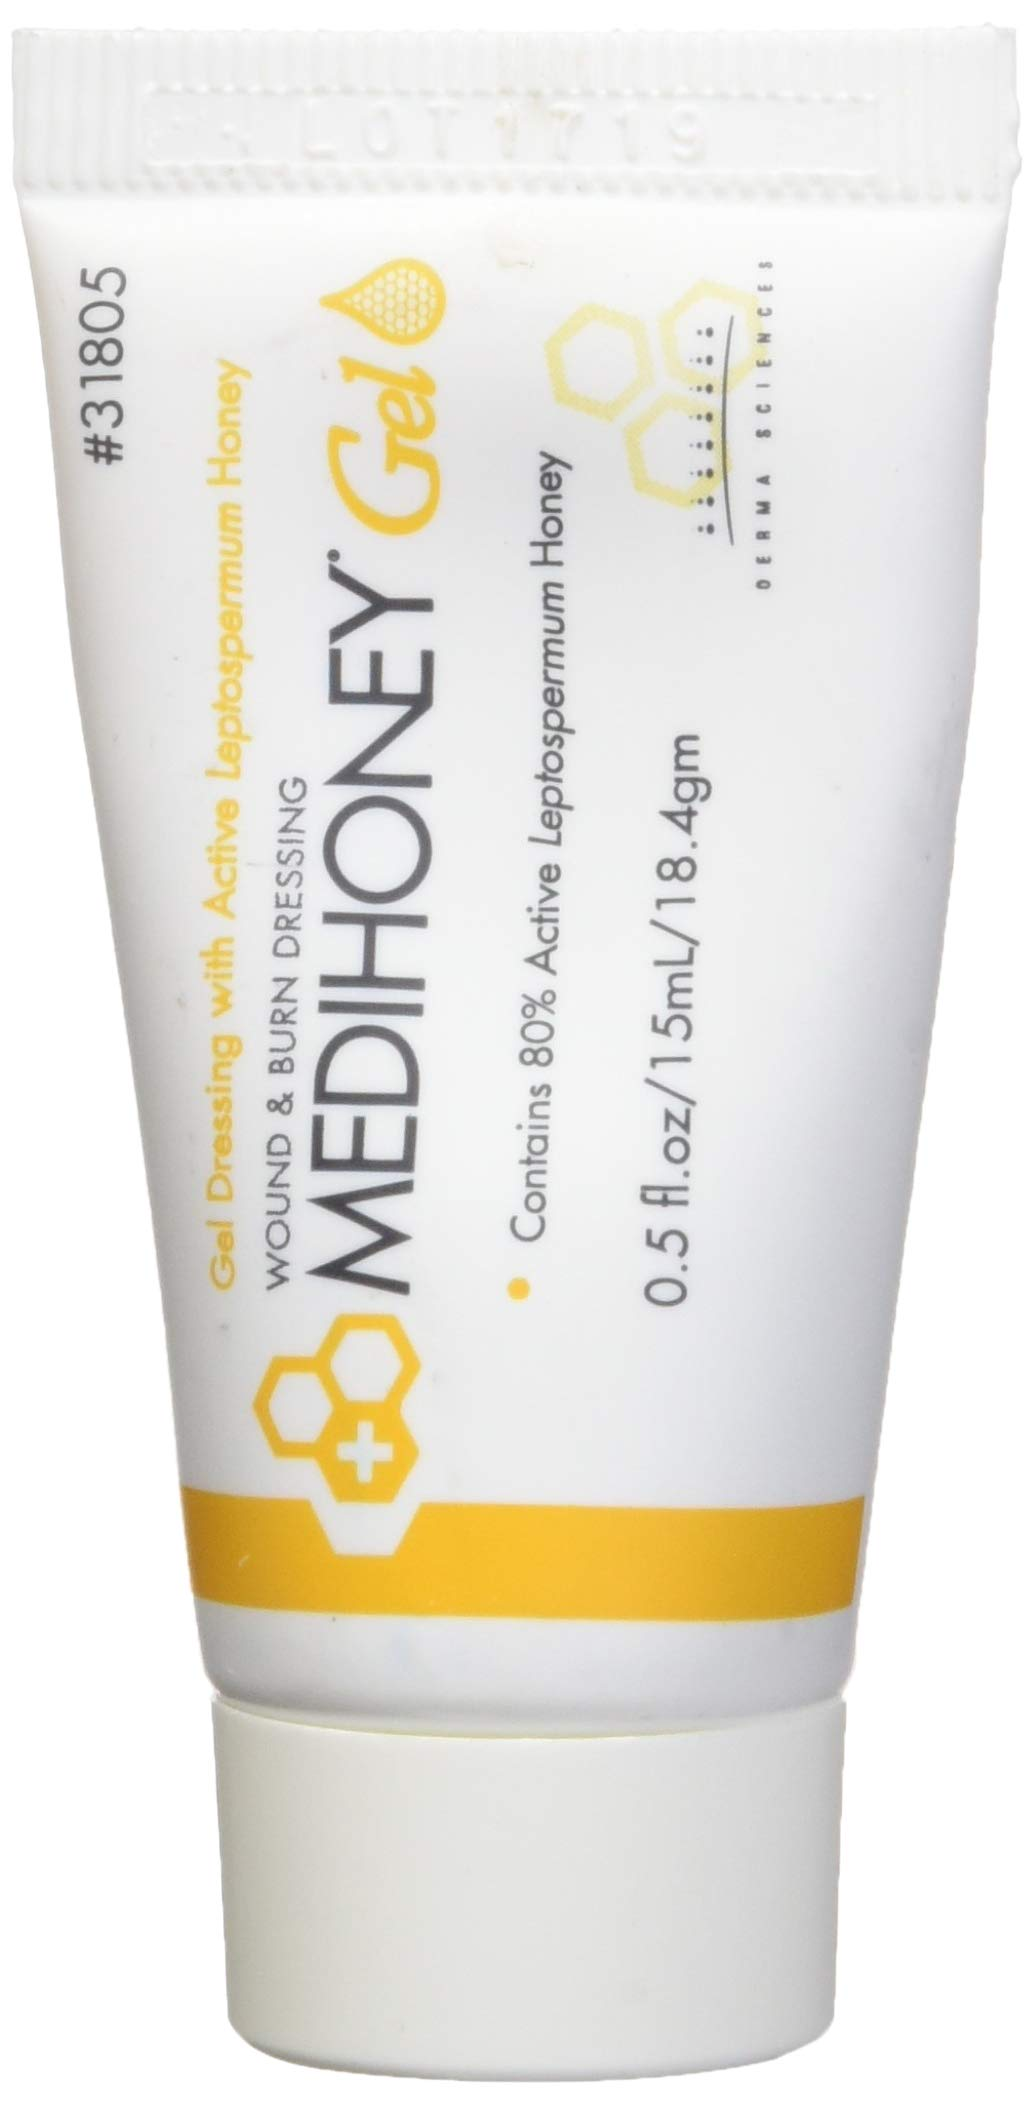 Amazon com: Improved Medihoney Gel Wound and & Burn Dressing